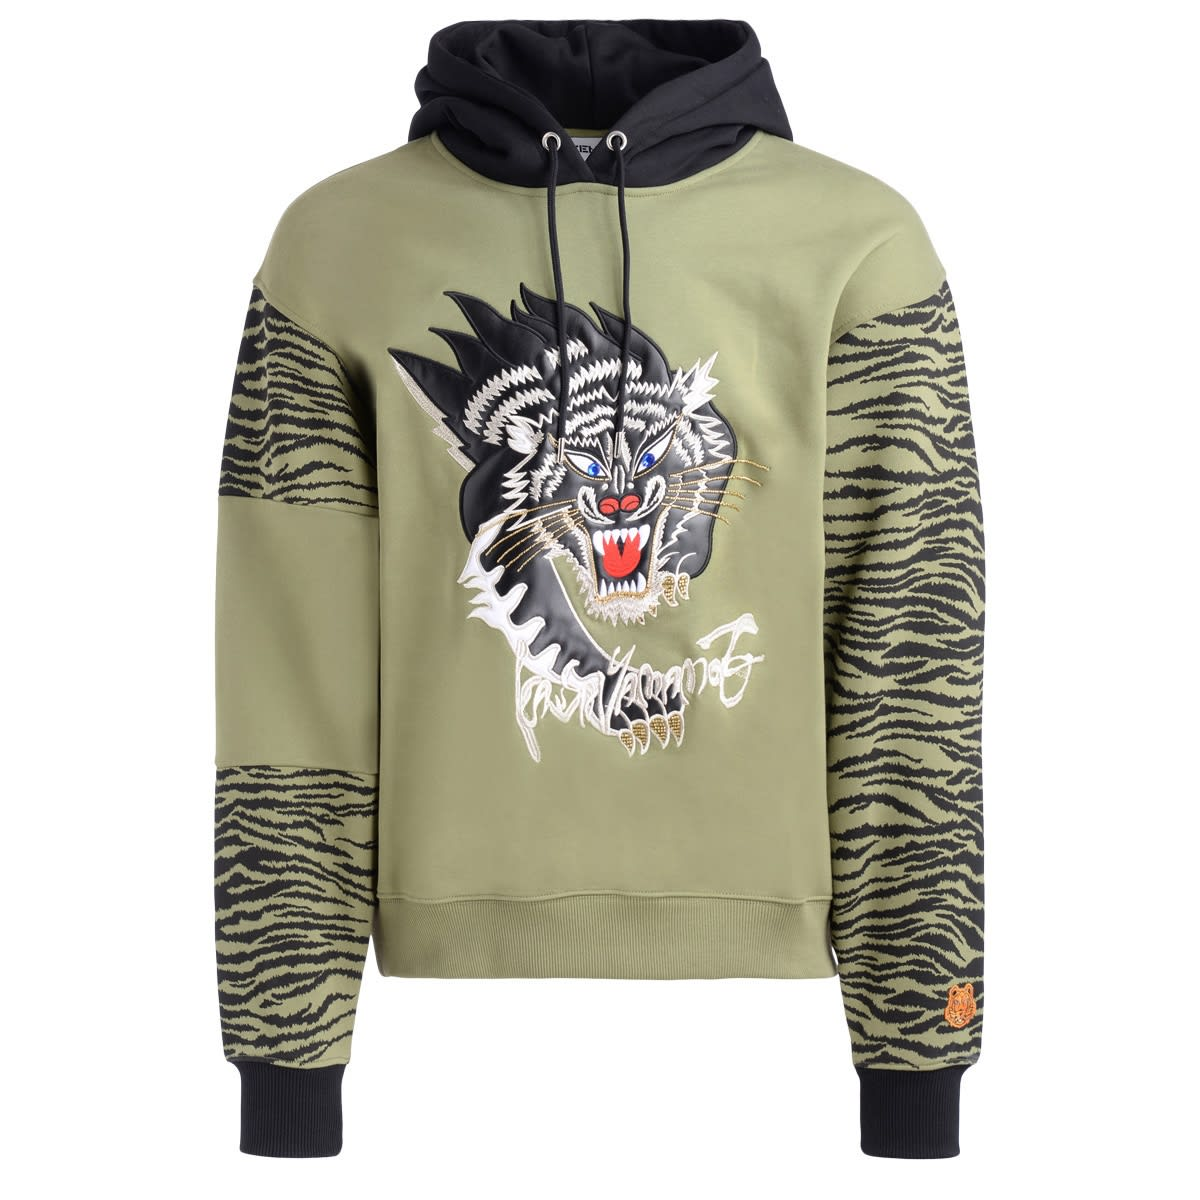 Kenzo GREEN KENZO SWEATSHIRT FOR KANSAIYAMAMOTO WITH BLACK PANTHER PRINT